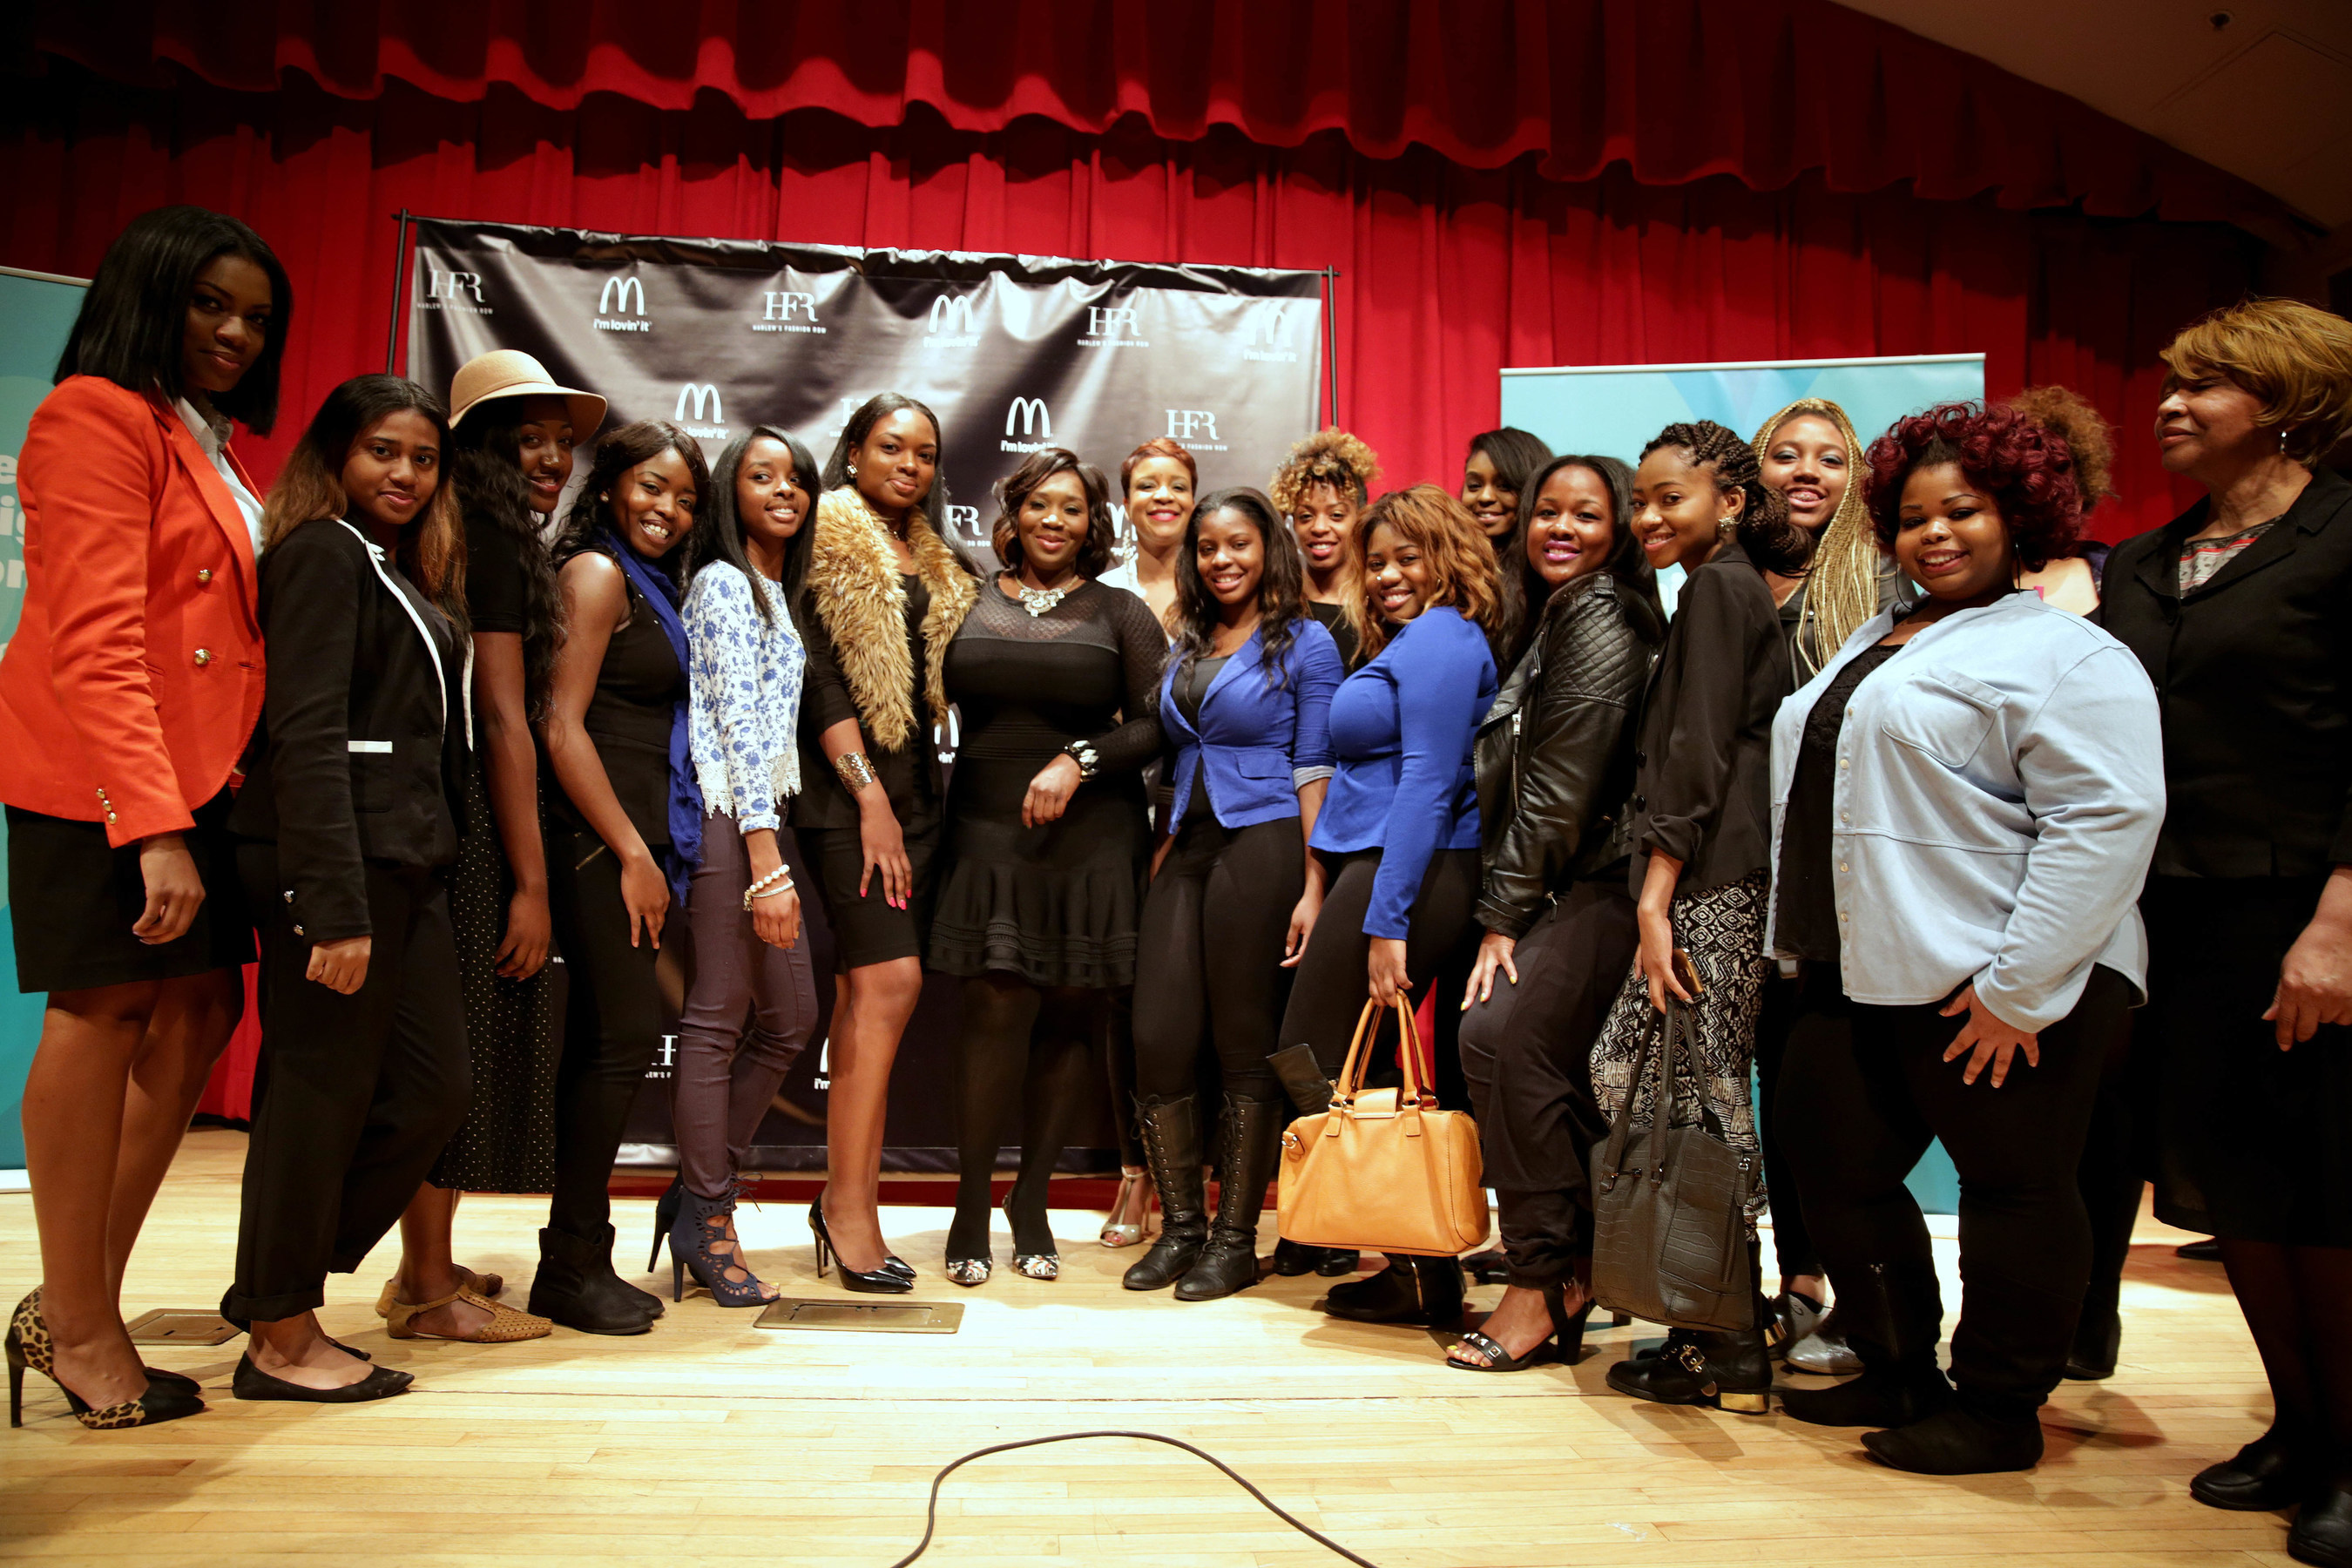 """Bravo's """"Fashion Queens"""" host Bevy Smith (center) and Harlem's Fashion Row (HFR) founder Brandice Henderson-Daniel discussed staying relevant in the fashion industry with Clark Atlanta University students today. McDonald's partnered with HFR to launch the 2015 Lovin' Student Fashion Design Competition, open exclusively to HBCU students. Students can visit harlemsfashionrow.com for more details."""